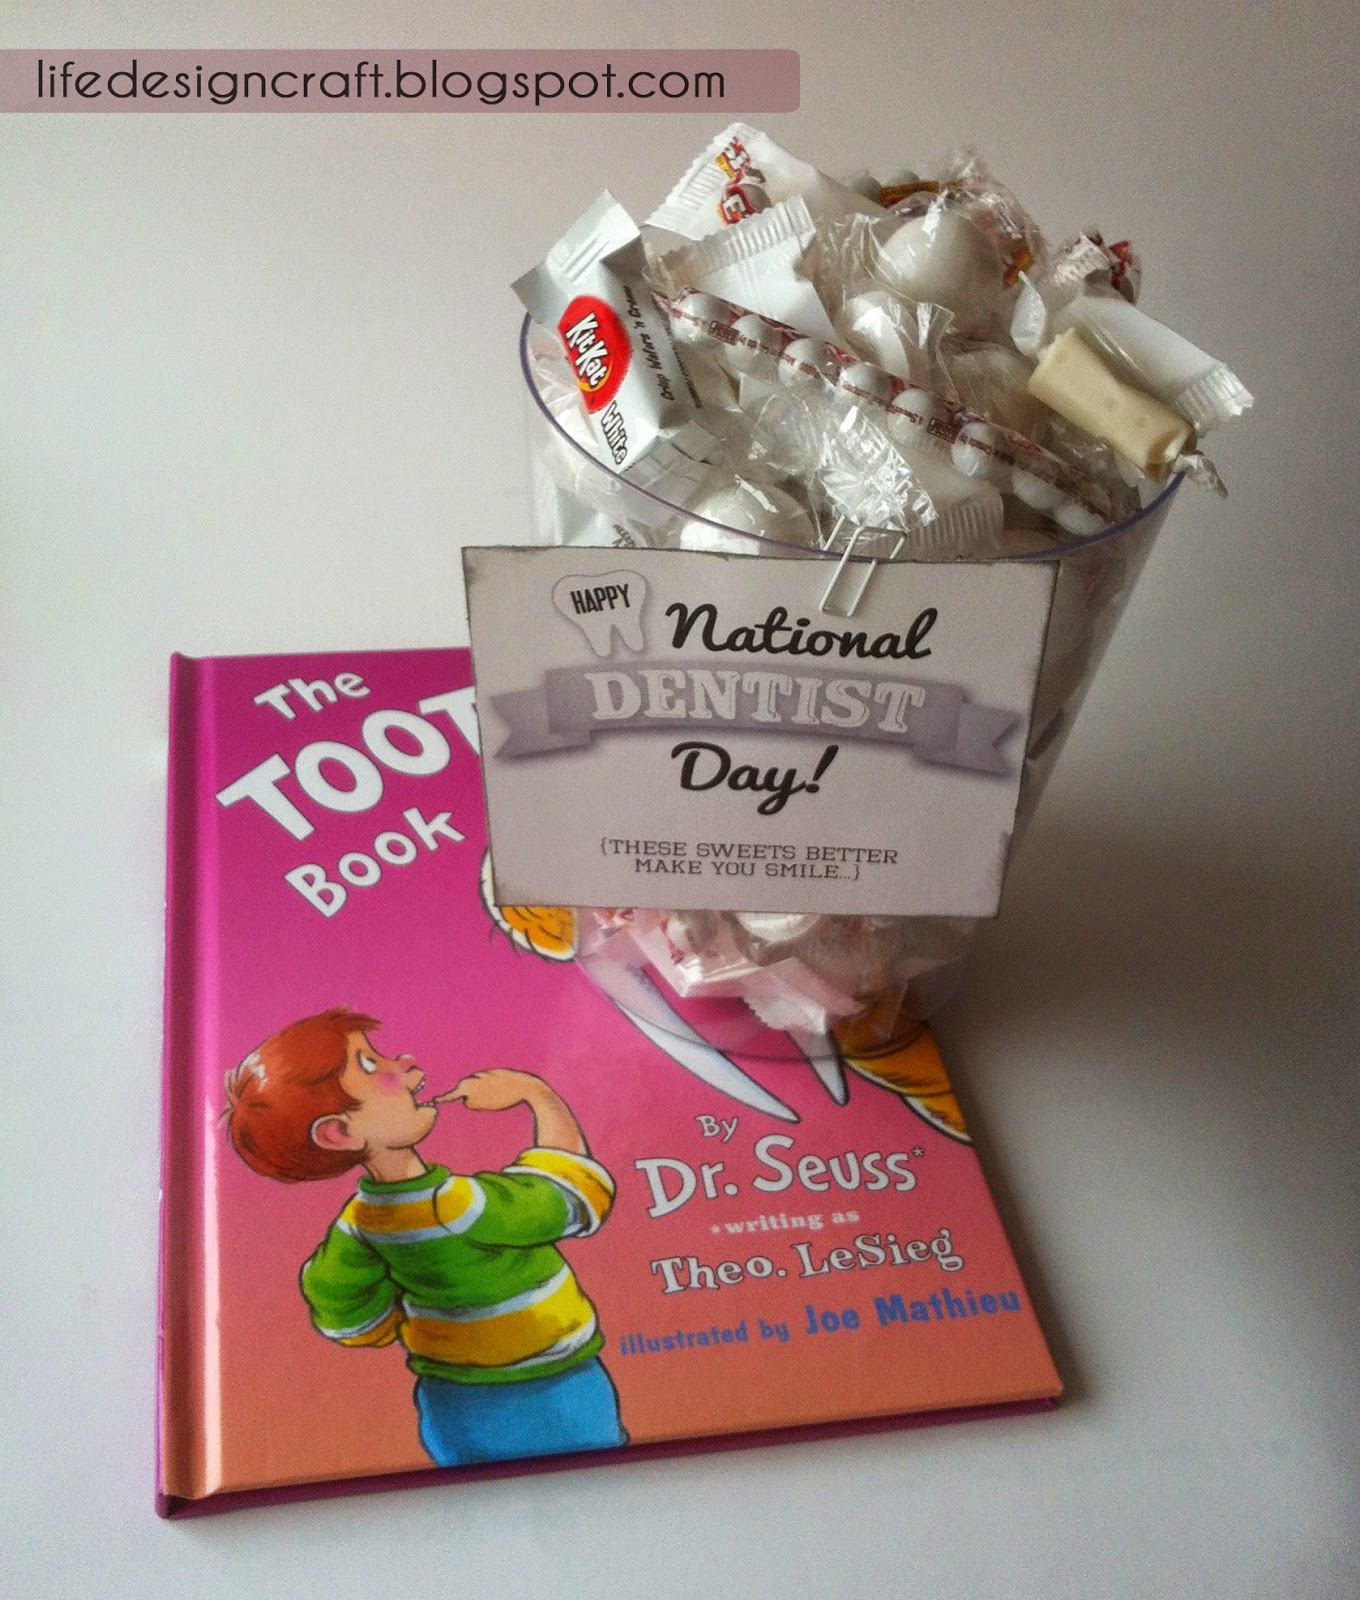 National Dentist Day Gift - especially for the daddy dentists & adaptable for any dentist! [includes free tag printable]